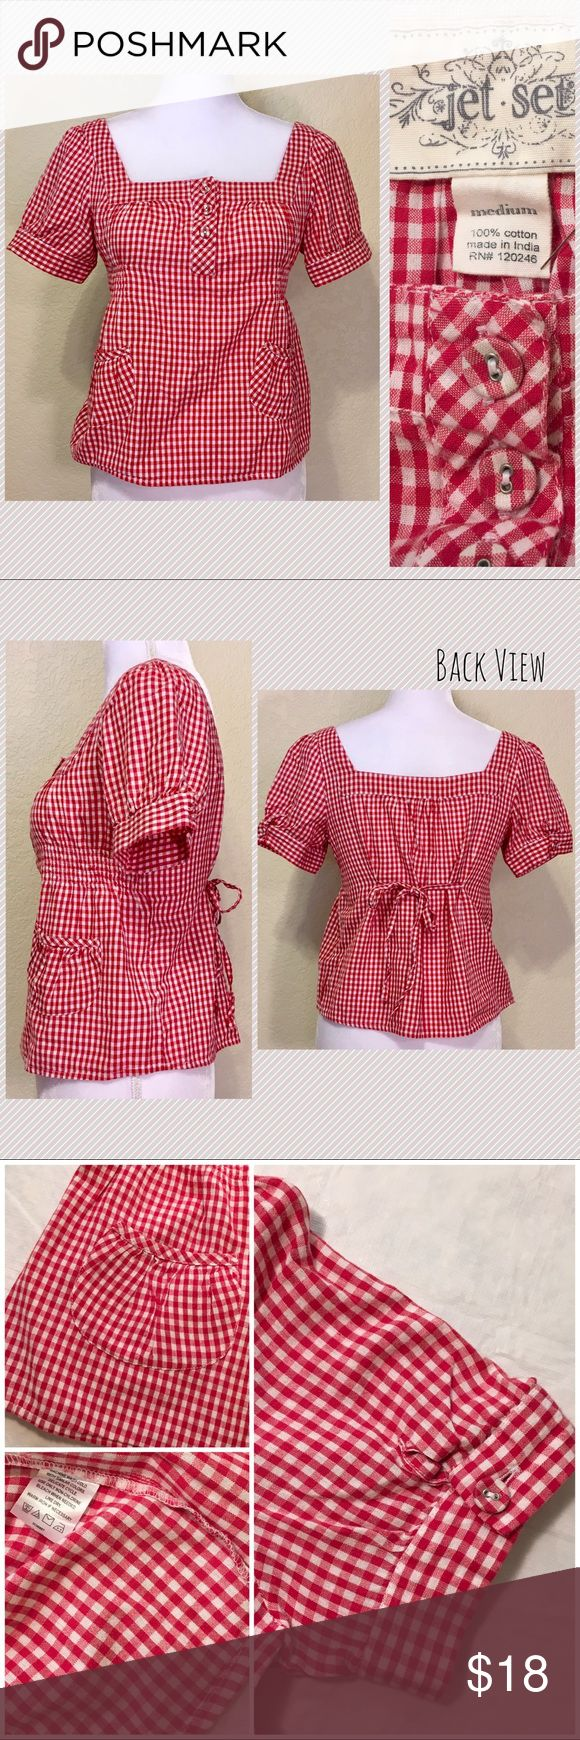 """Jet Set Red Gingham Crop Top Jet Set Red Gingham Crop Top.  Size M.  Excellent condition.  Pleated button sleeves.  Two pleated front pockets.  Three button bodice.  Front side elastic.  Attached back tie.  Length shoulder to hem: 20"""".  Waist/across elastic: 17.5"""" across.  Bottom: 20"""" across.  Sleeve length: 8"""".  Cuff width: 6"""".  100% cotton.  Machine wash cold, line dry.   Love it but not the price - I'm open to (reasonable) offers! Jet Set Tops Crop Tops"""